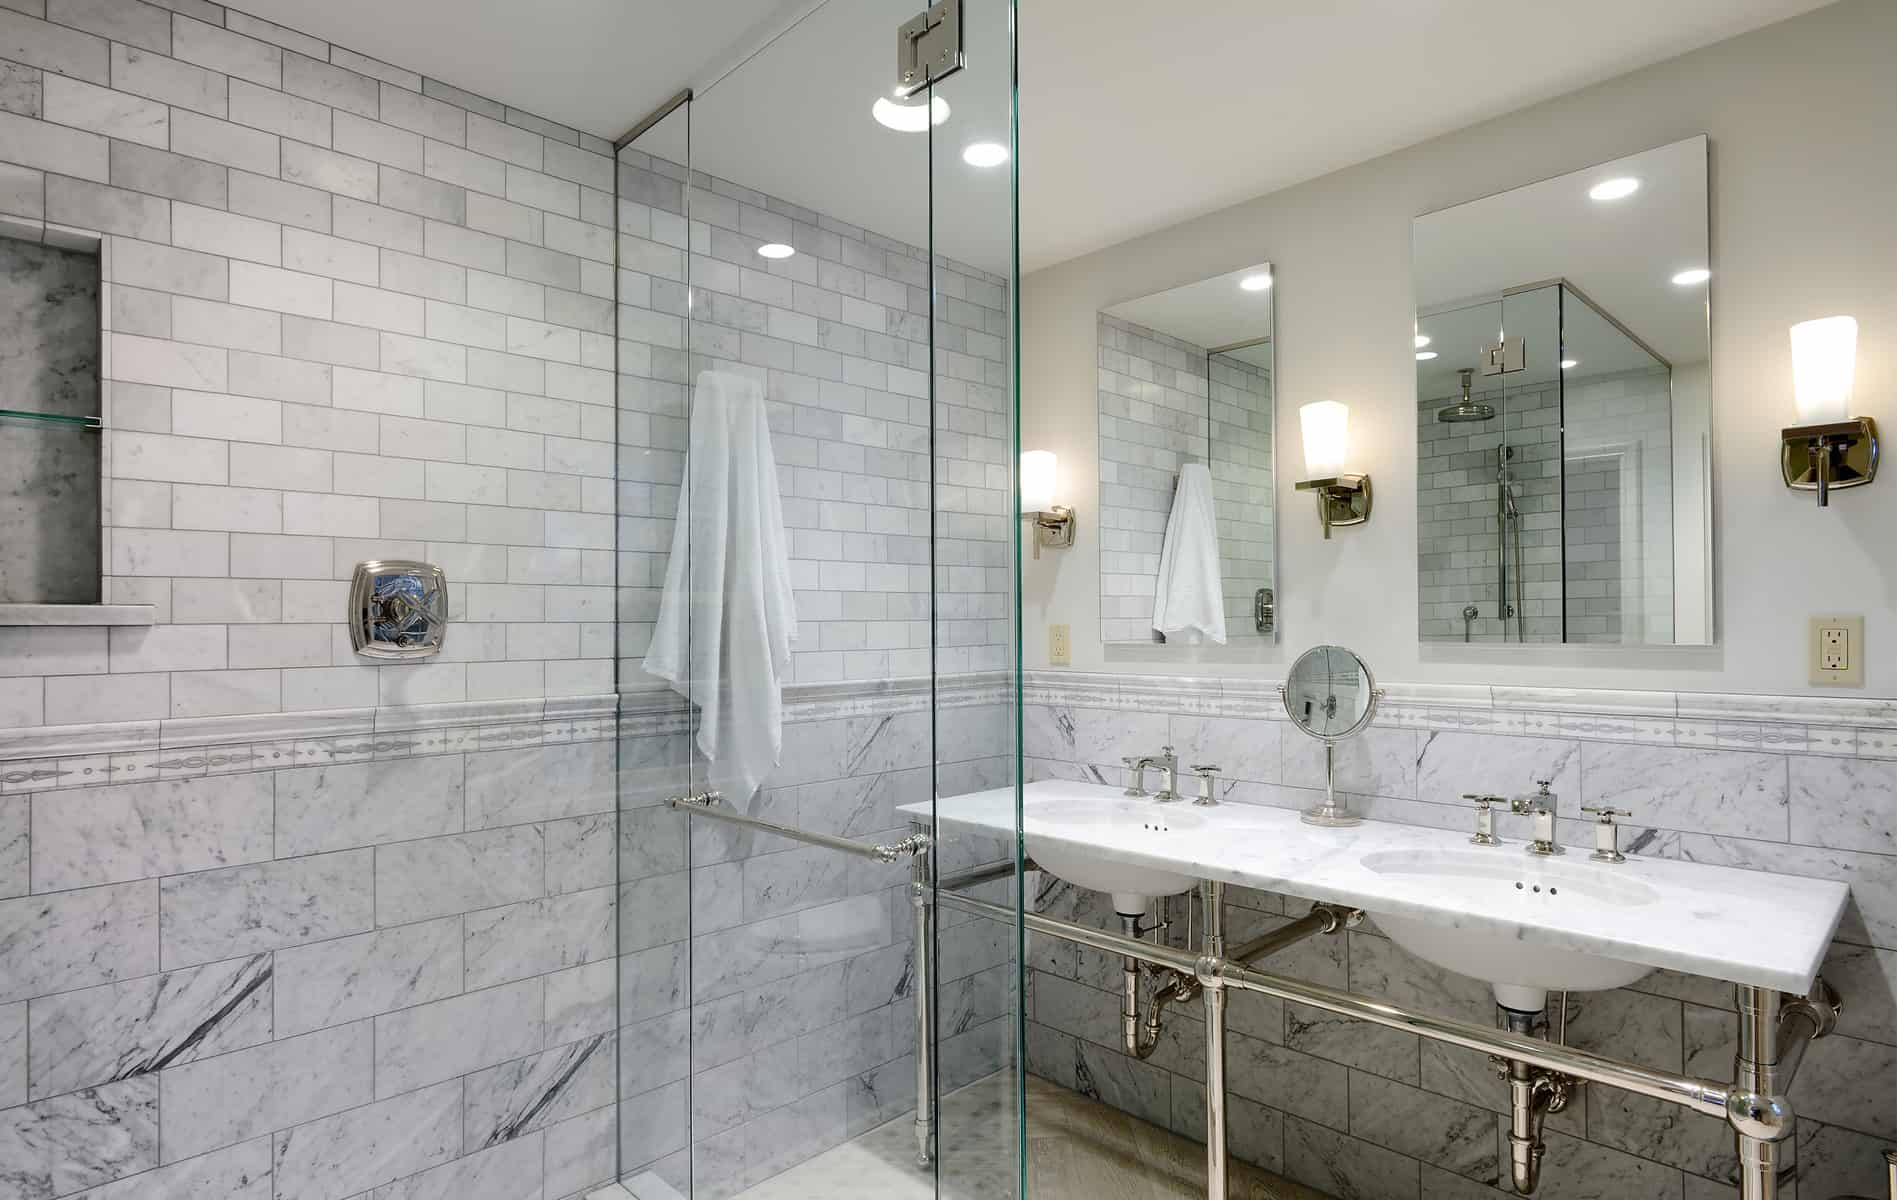 inc bathroom ars remodeling